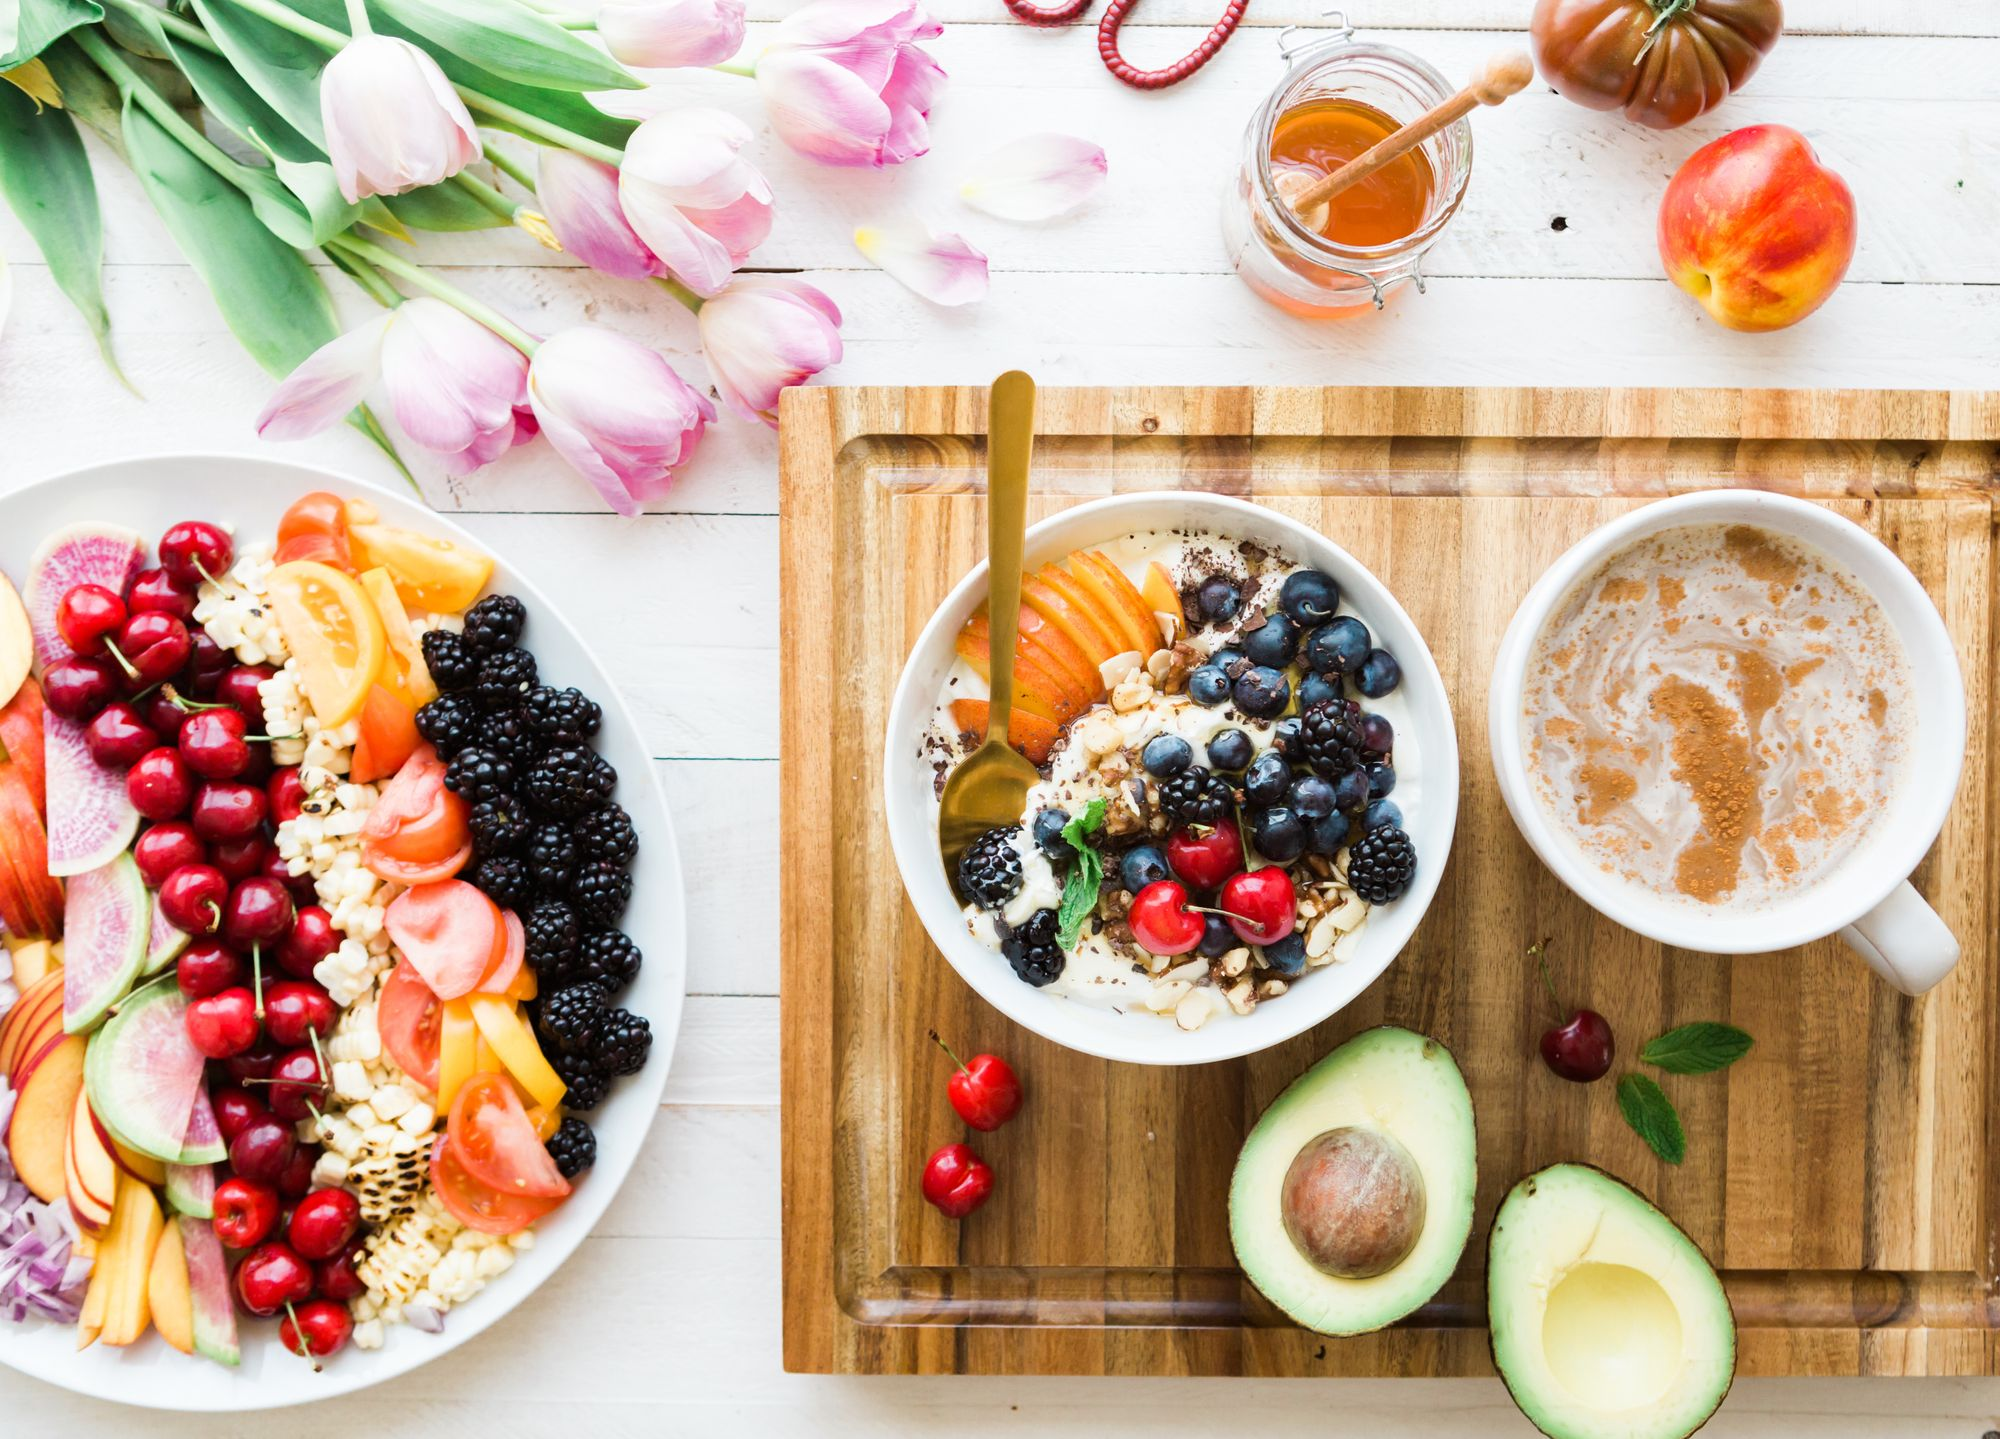 5 Tips On How to Shop For a Healthier Lifestyle